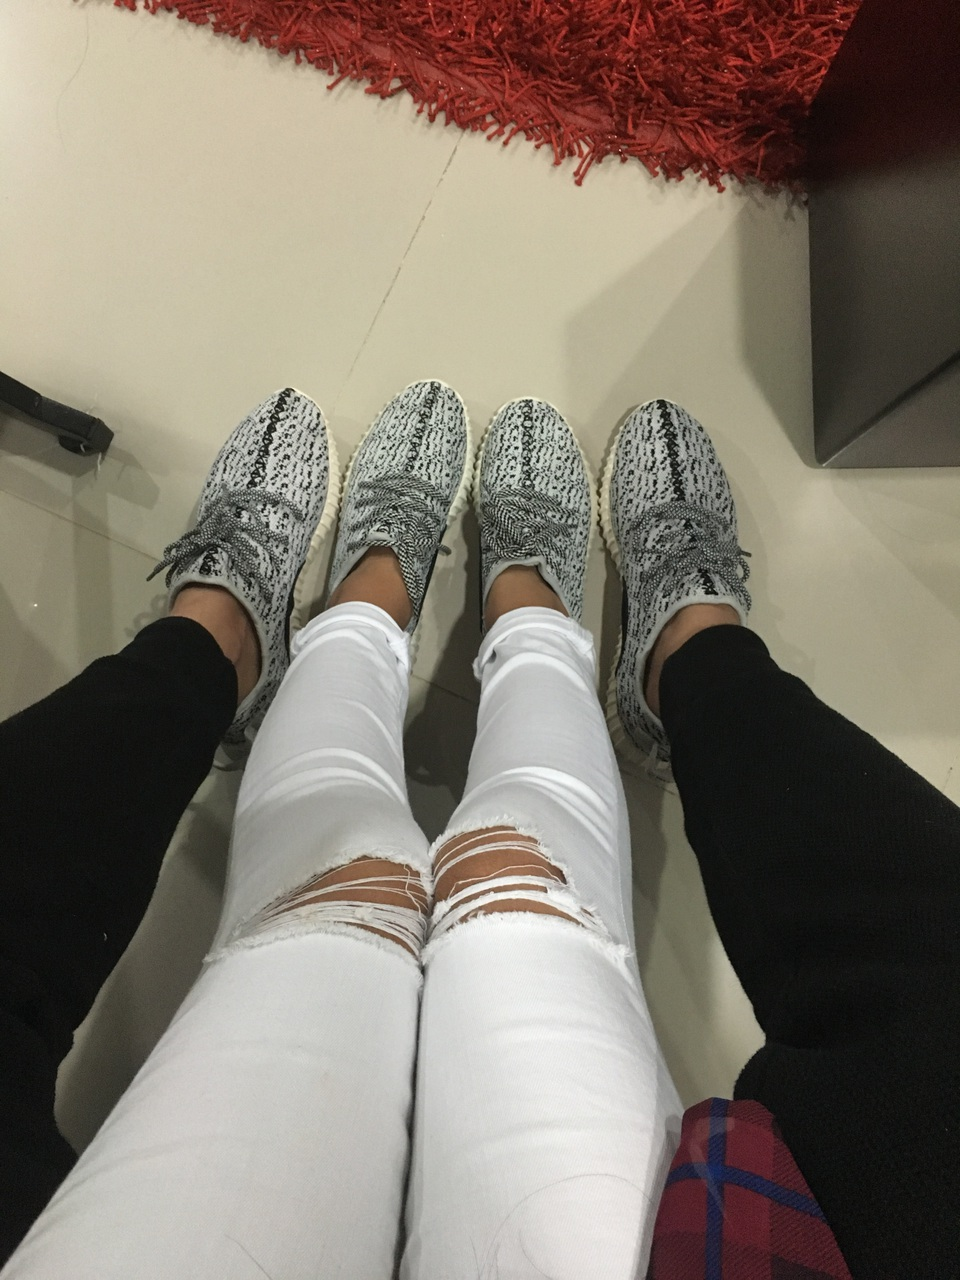 yeezy couple shoes cheap online